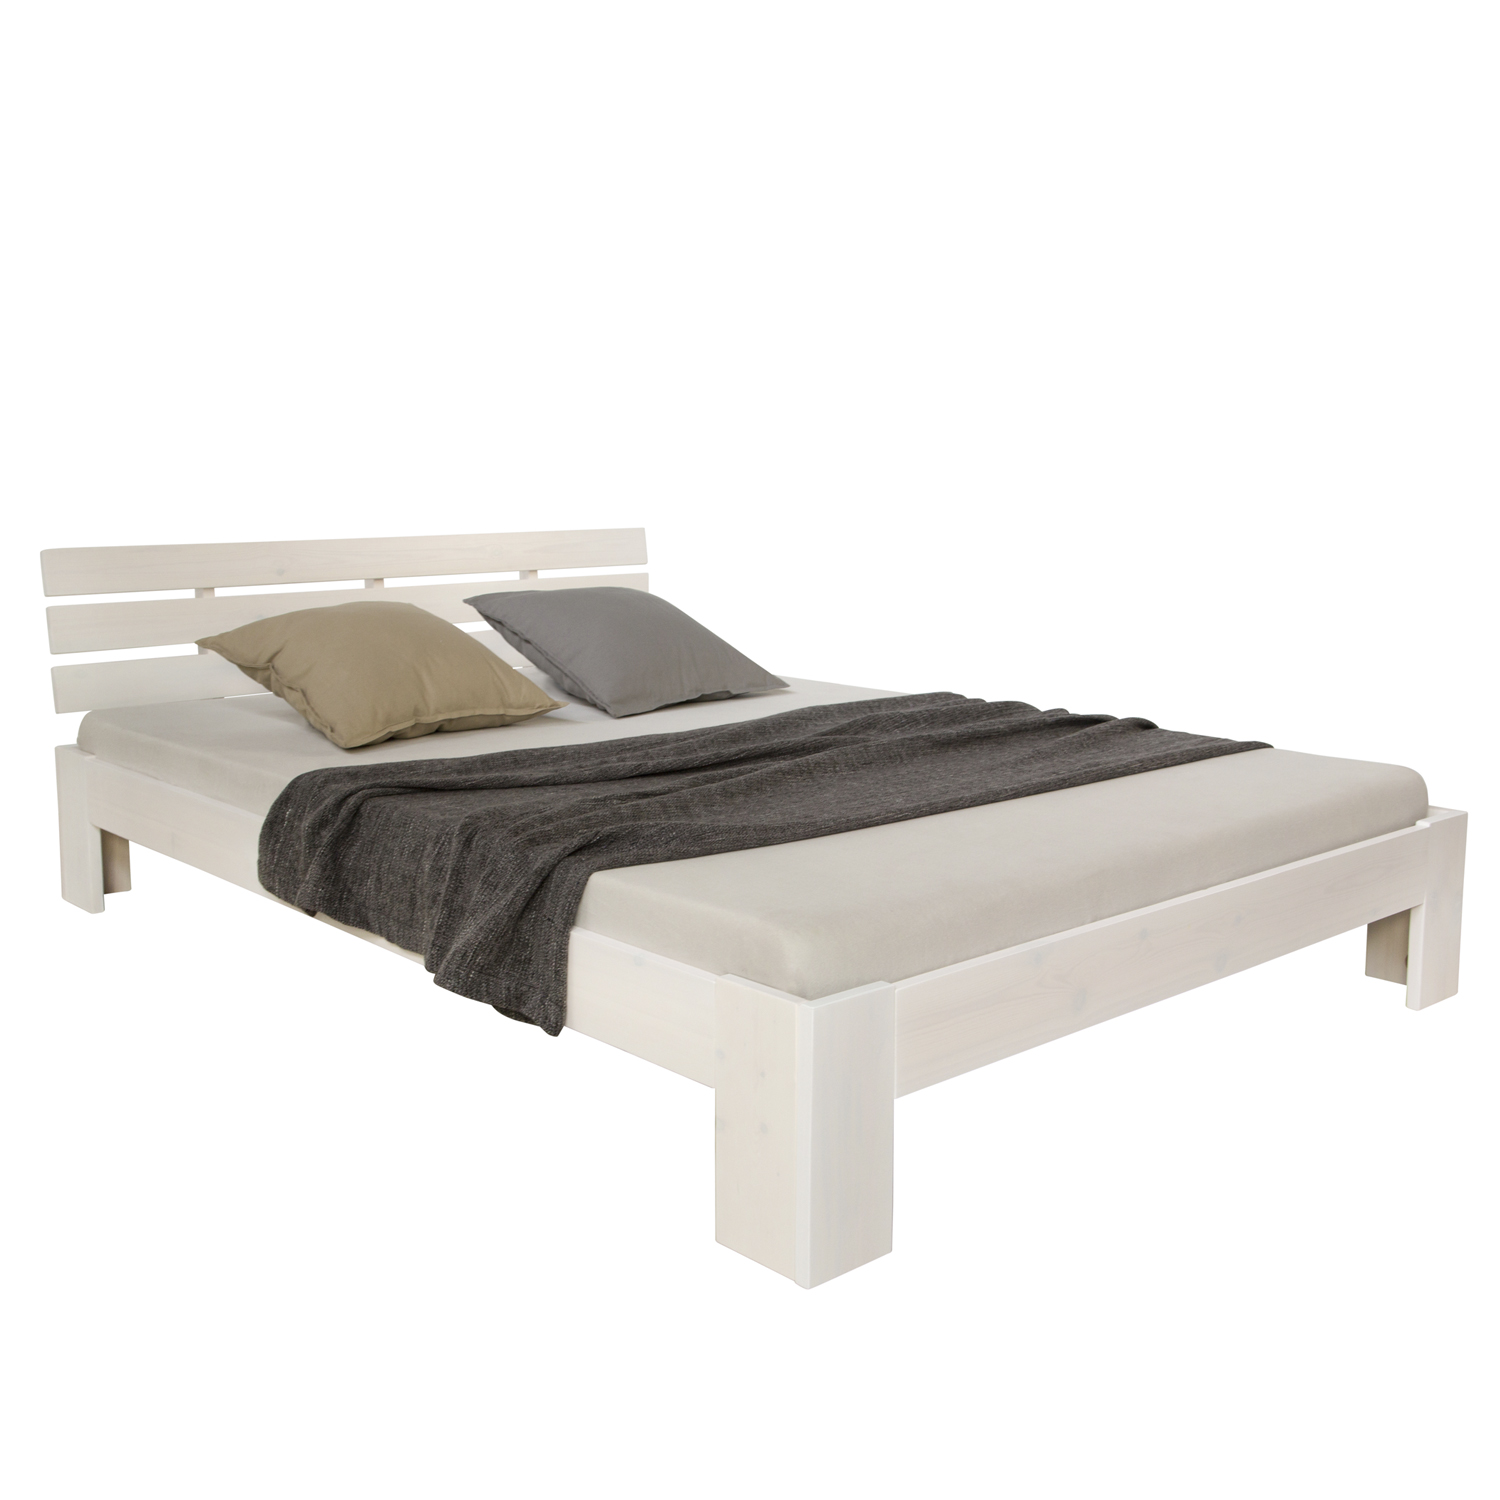 Couchtisch Weide Double Bed 140x200 Solid Pine Wooden Frame Bed